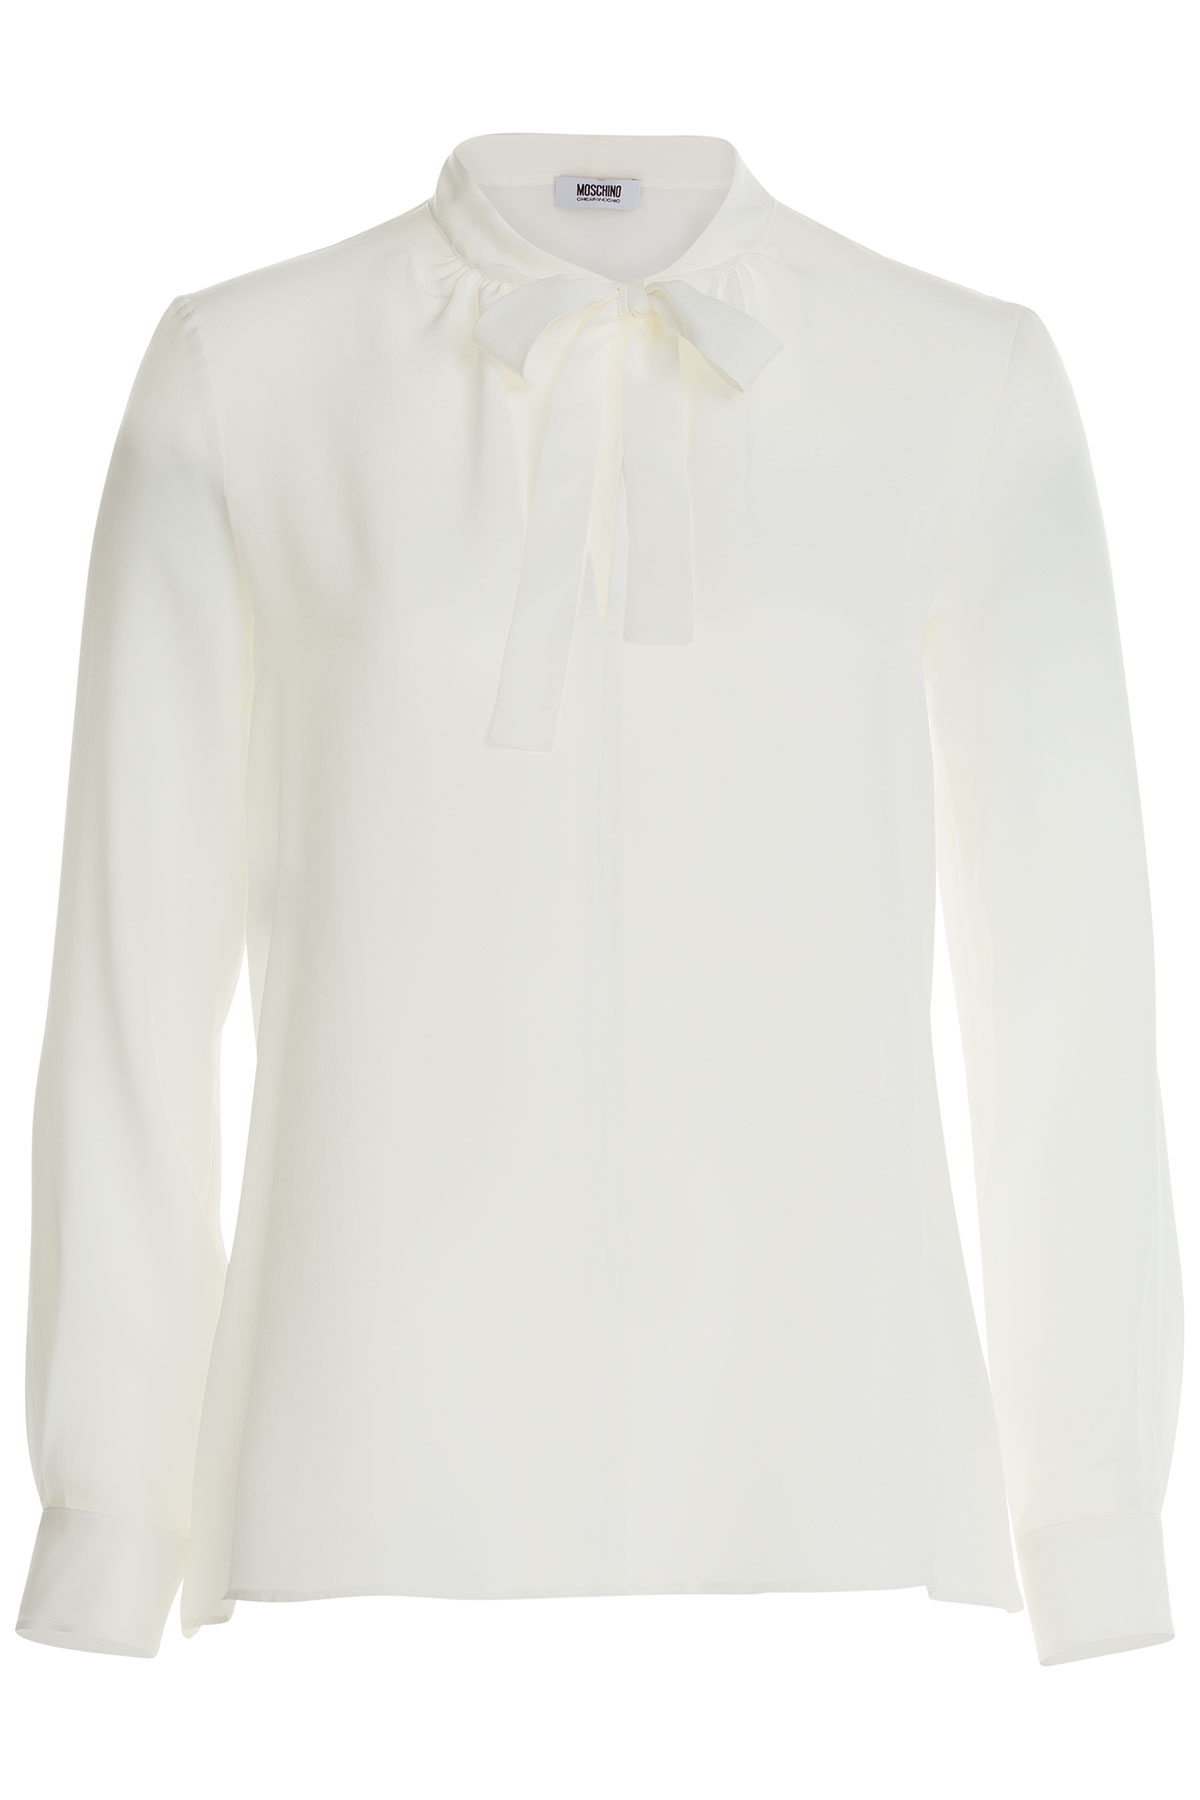 Lyst - Boutique Moschino Moschino Cheap And Chic Silk Blouse With ... a733aaedd5f